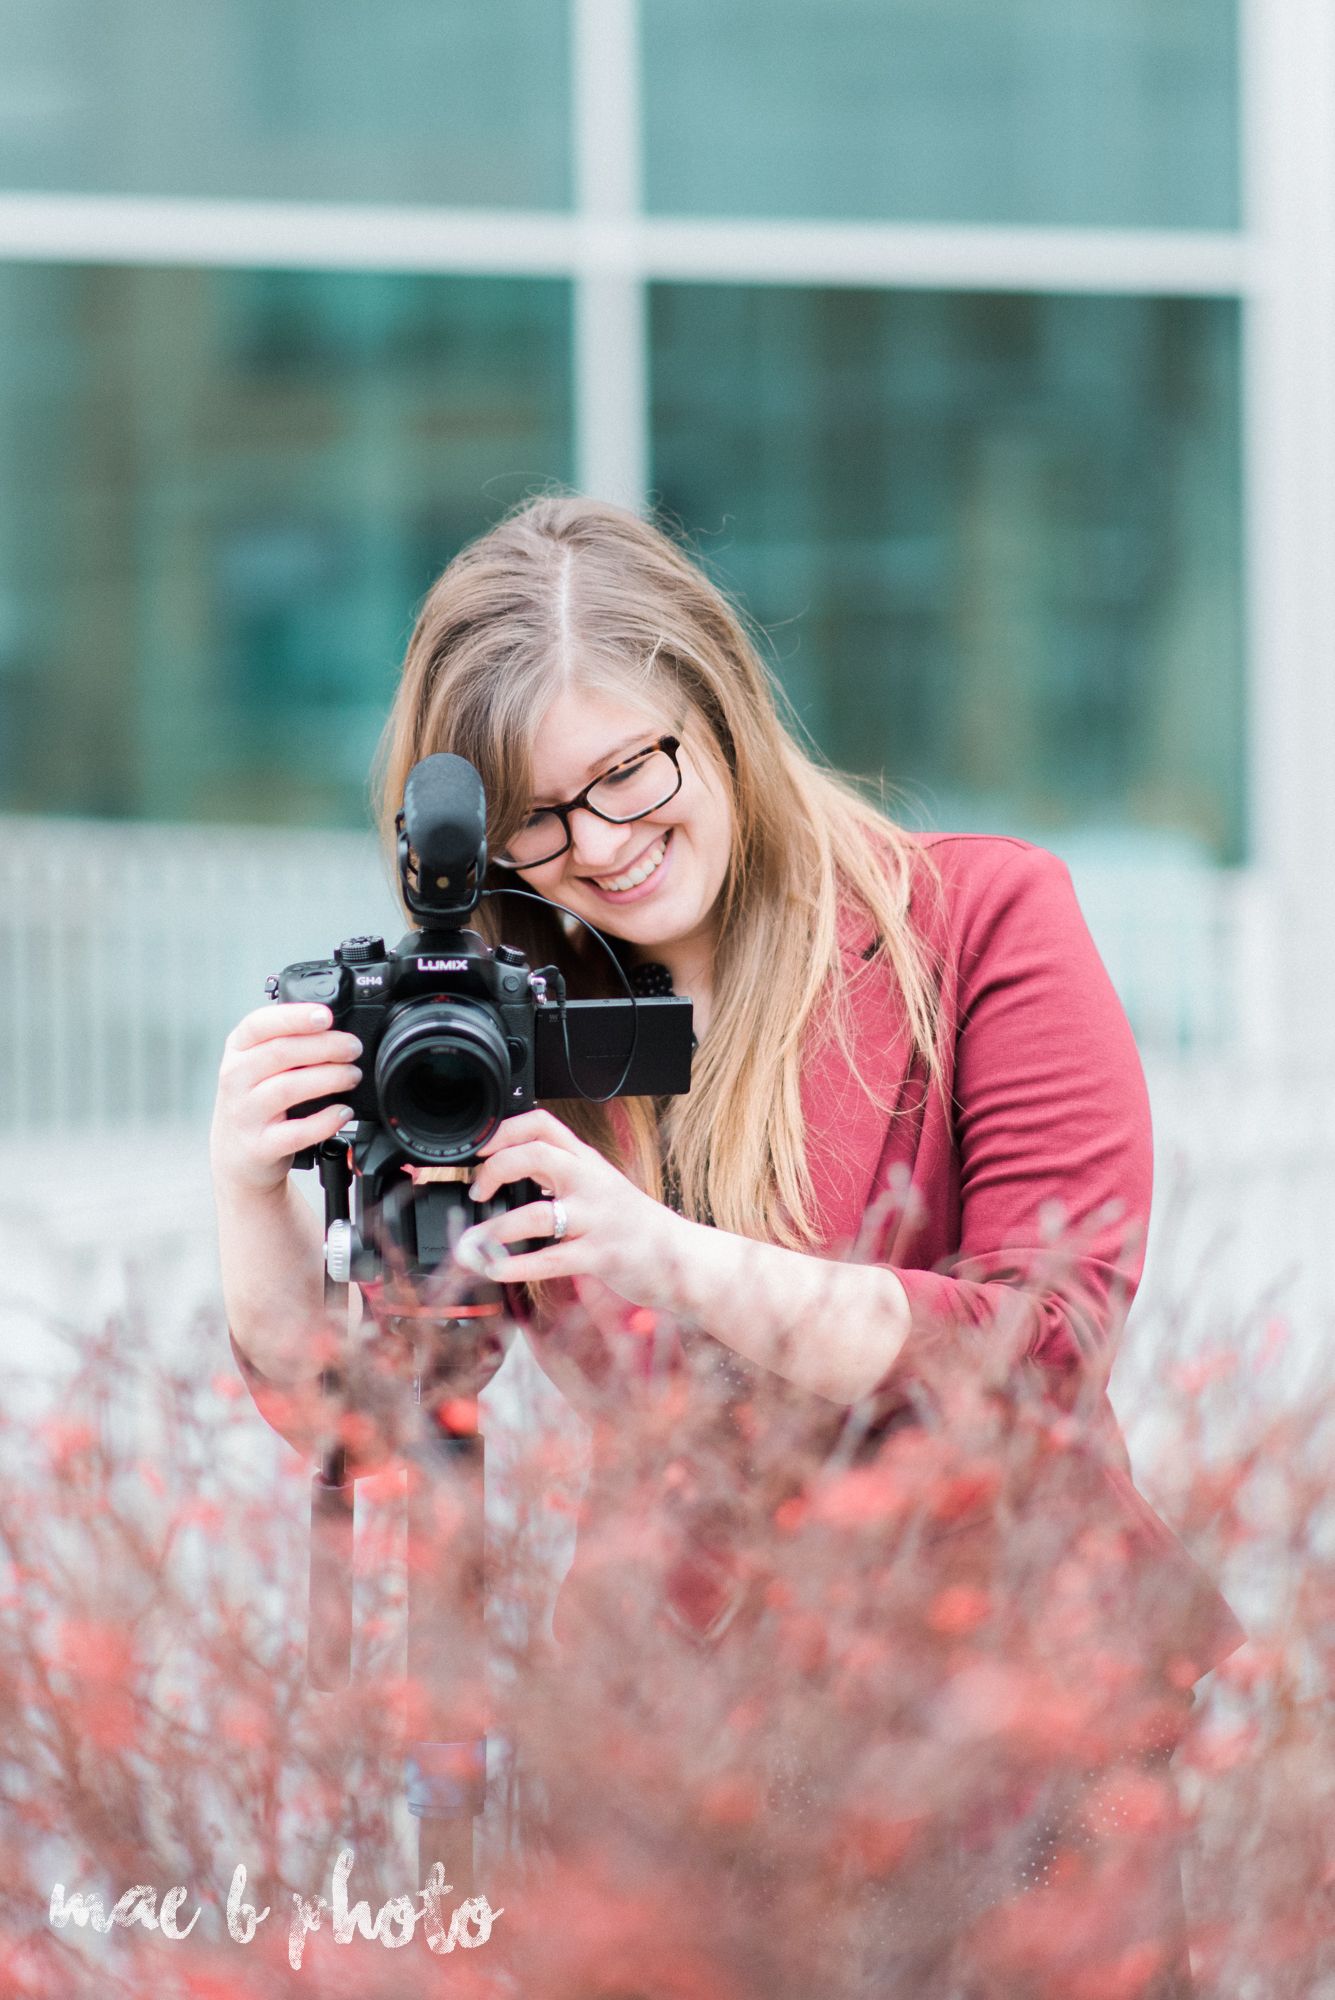 tips for booking your wedding videographer by emily rusu wedding videographer in youngstown ohio-5.jpg